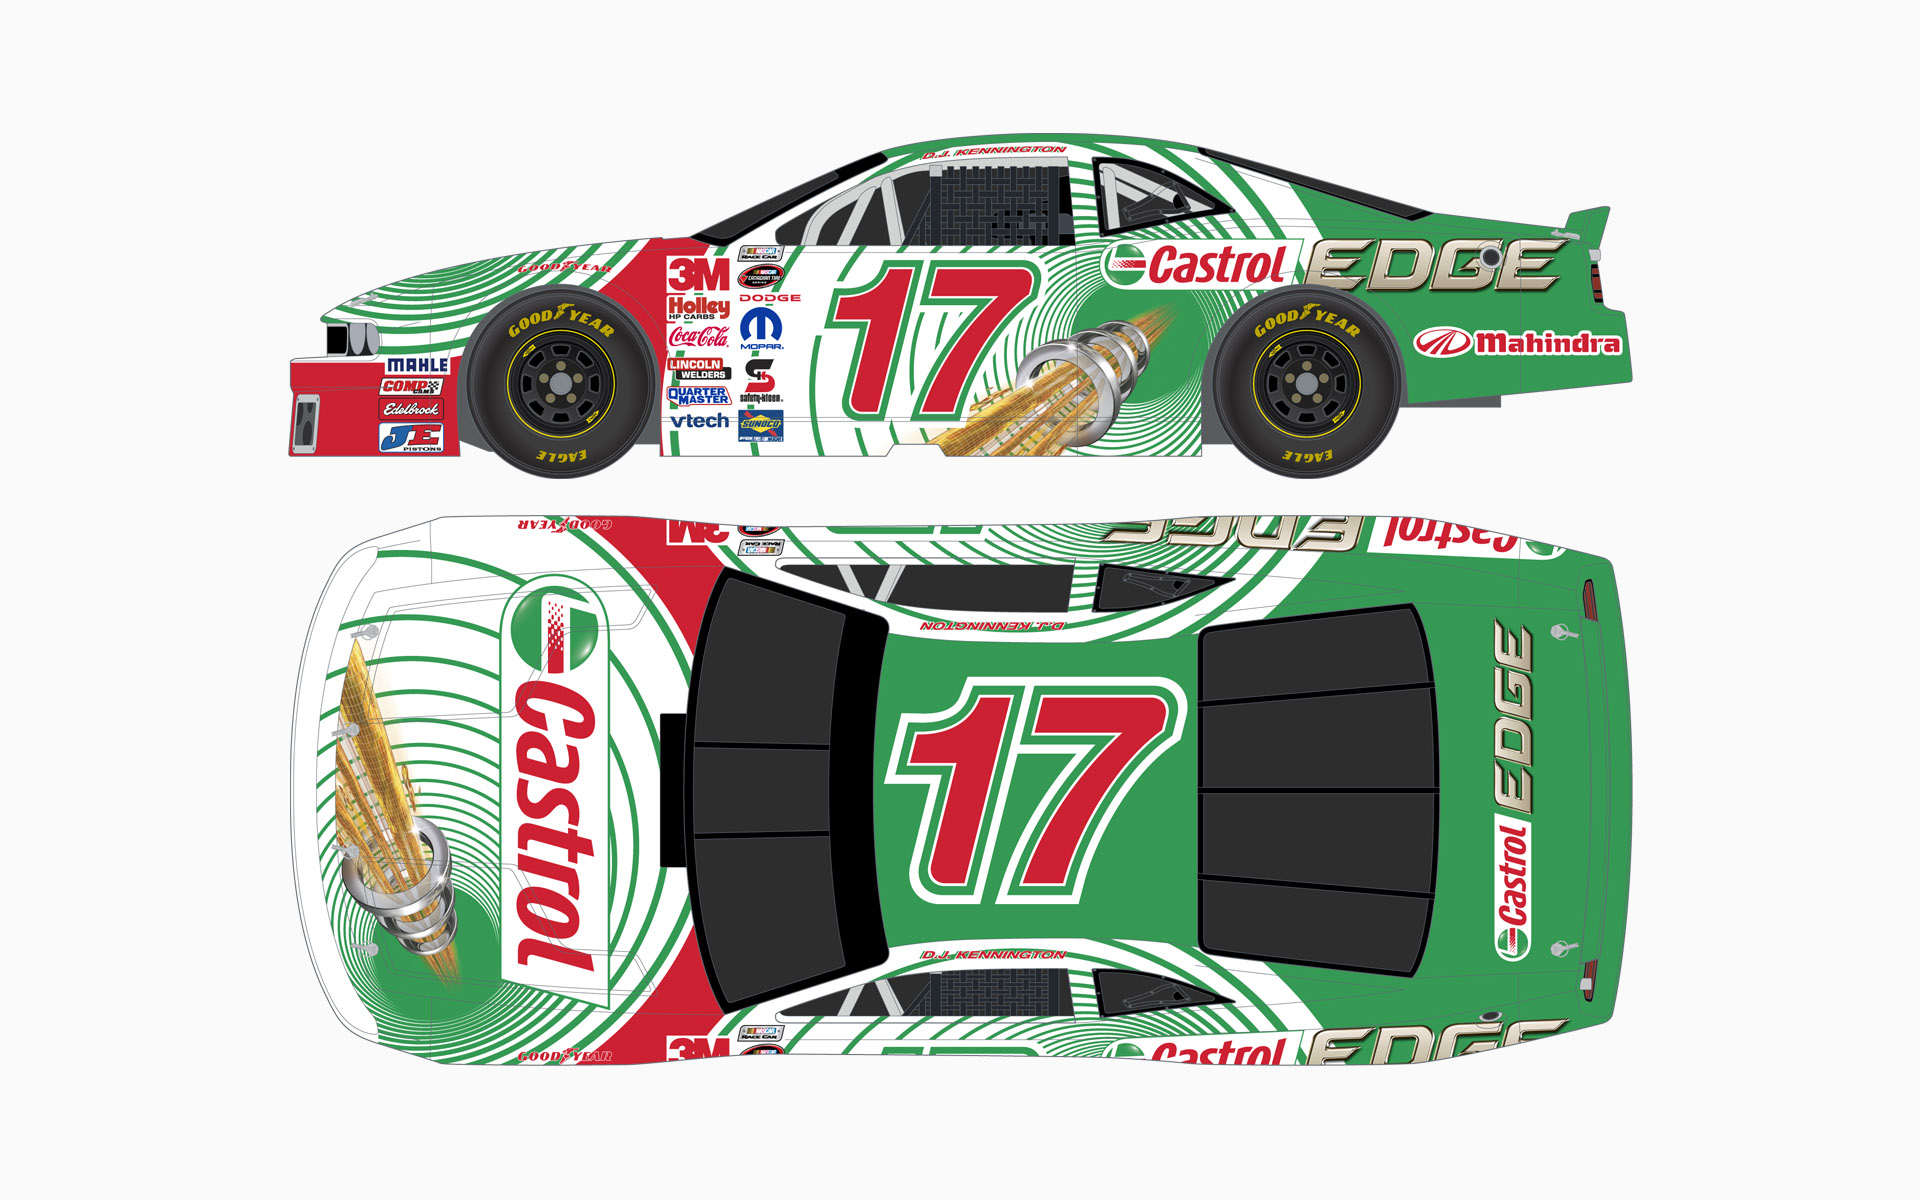 Wakefield Canada Castrol Edge Dodge Challenger NASCAR Canadian Tire Series Livery Elevations